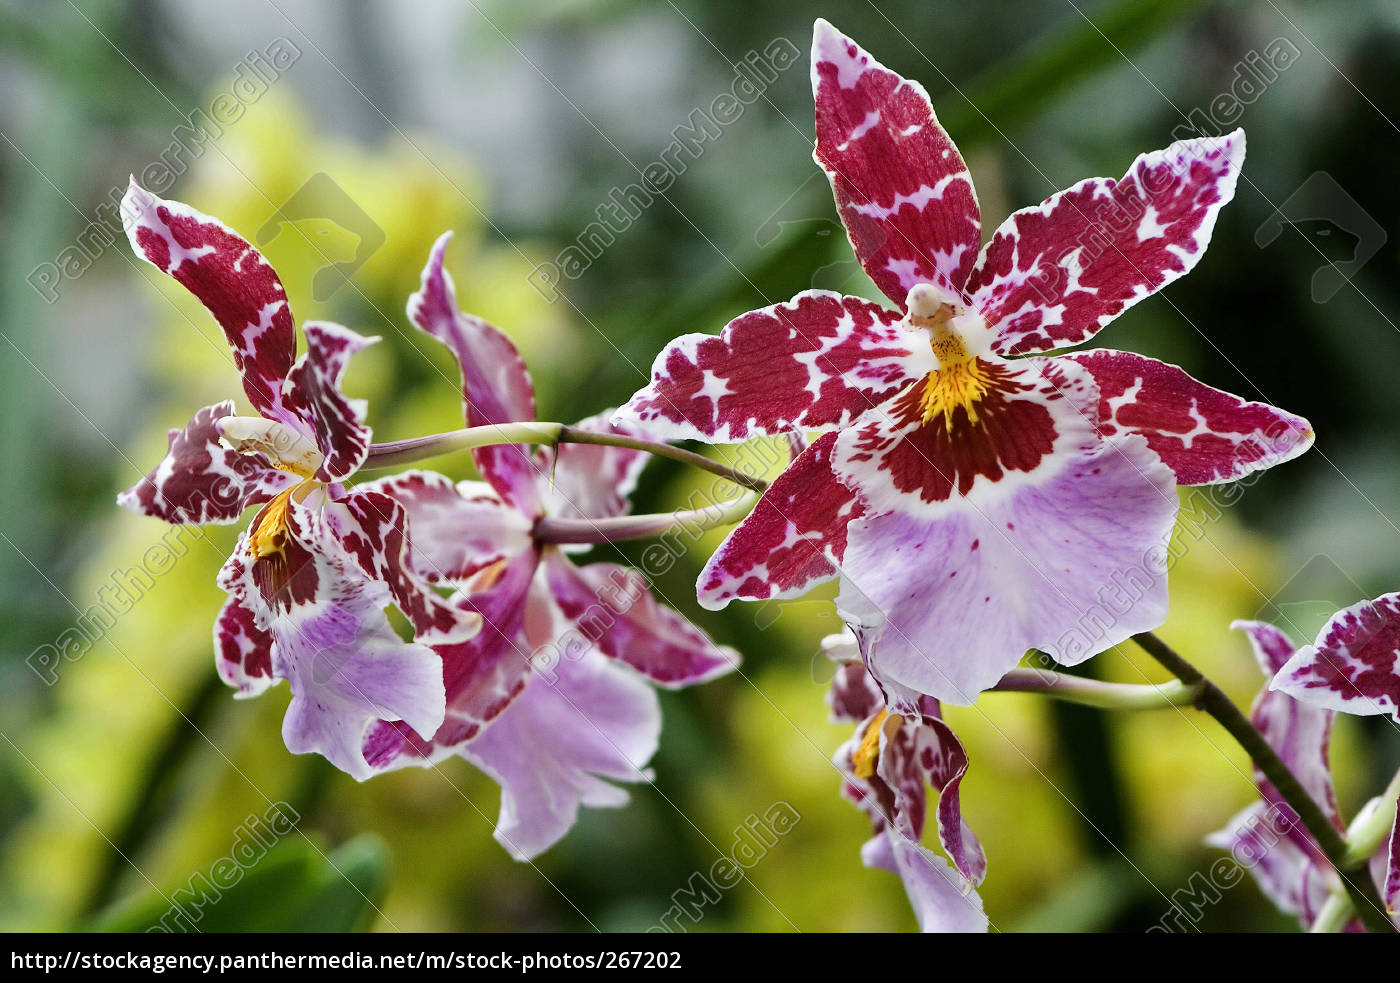 toothed, tongue, orchid - 267202